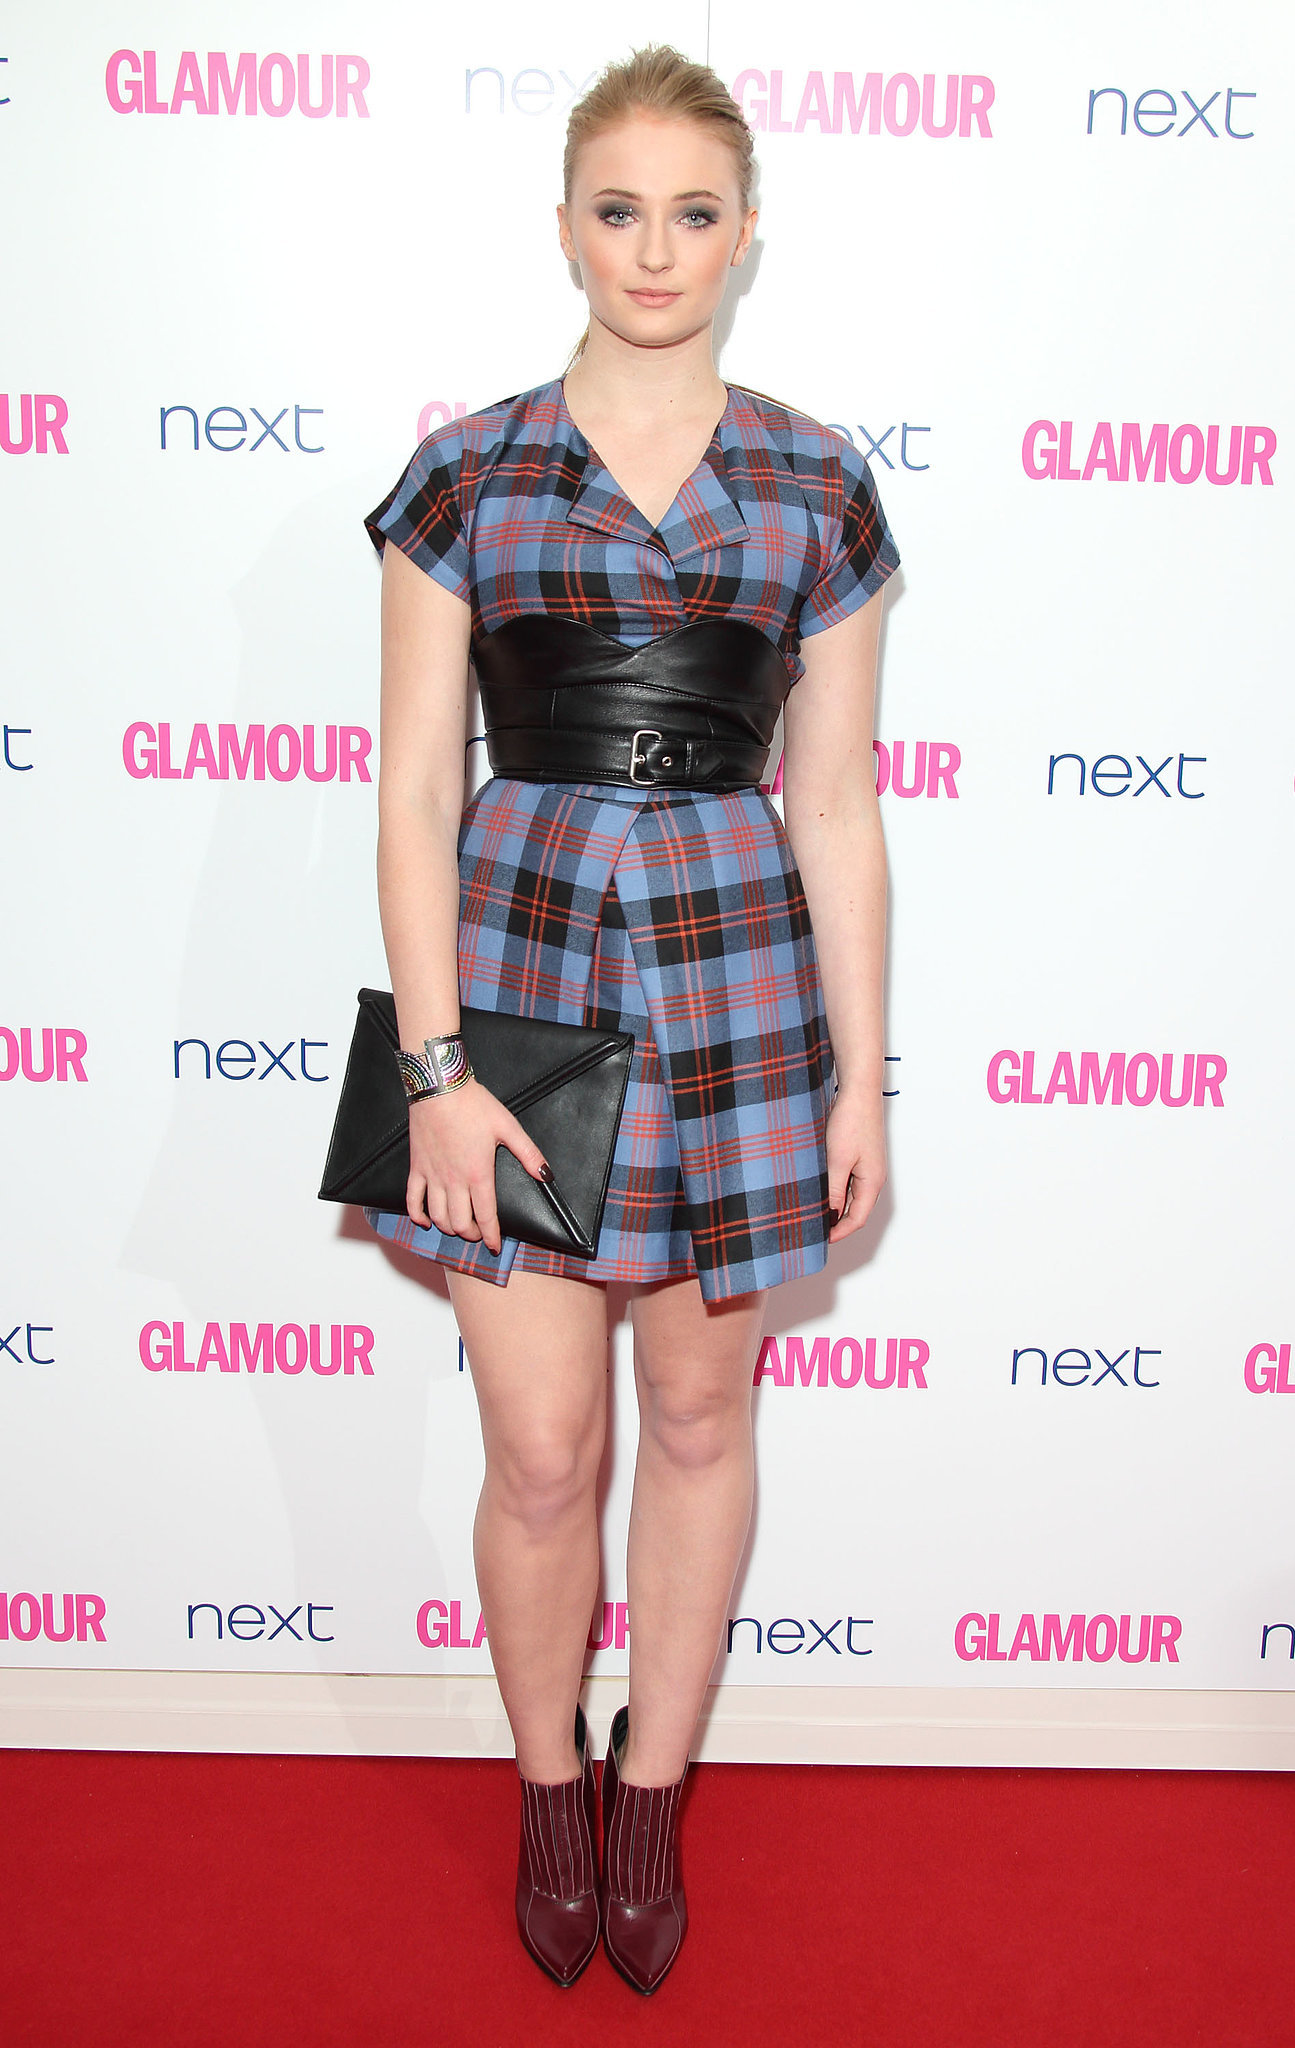 Game of Thrones star Sophie Turner wore a plaid dress.